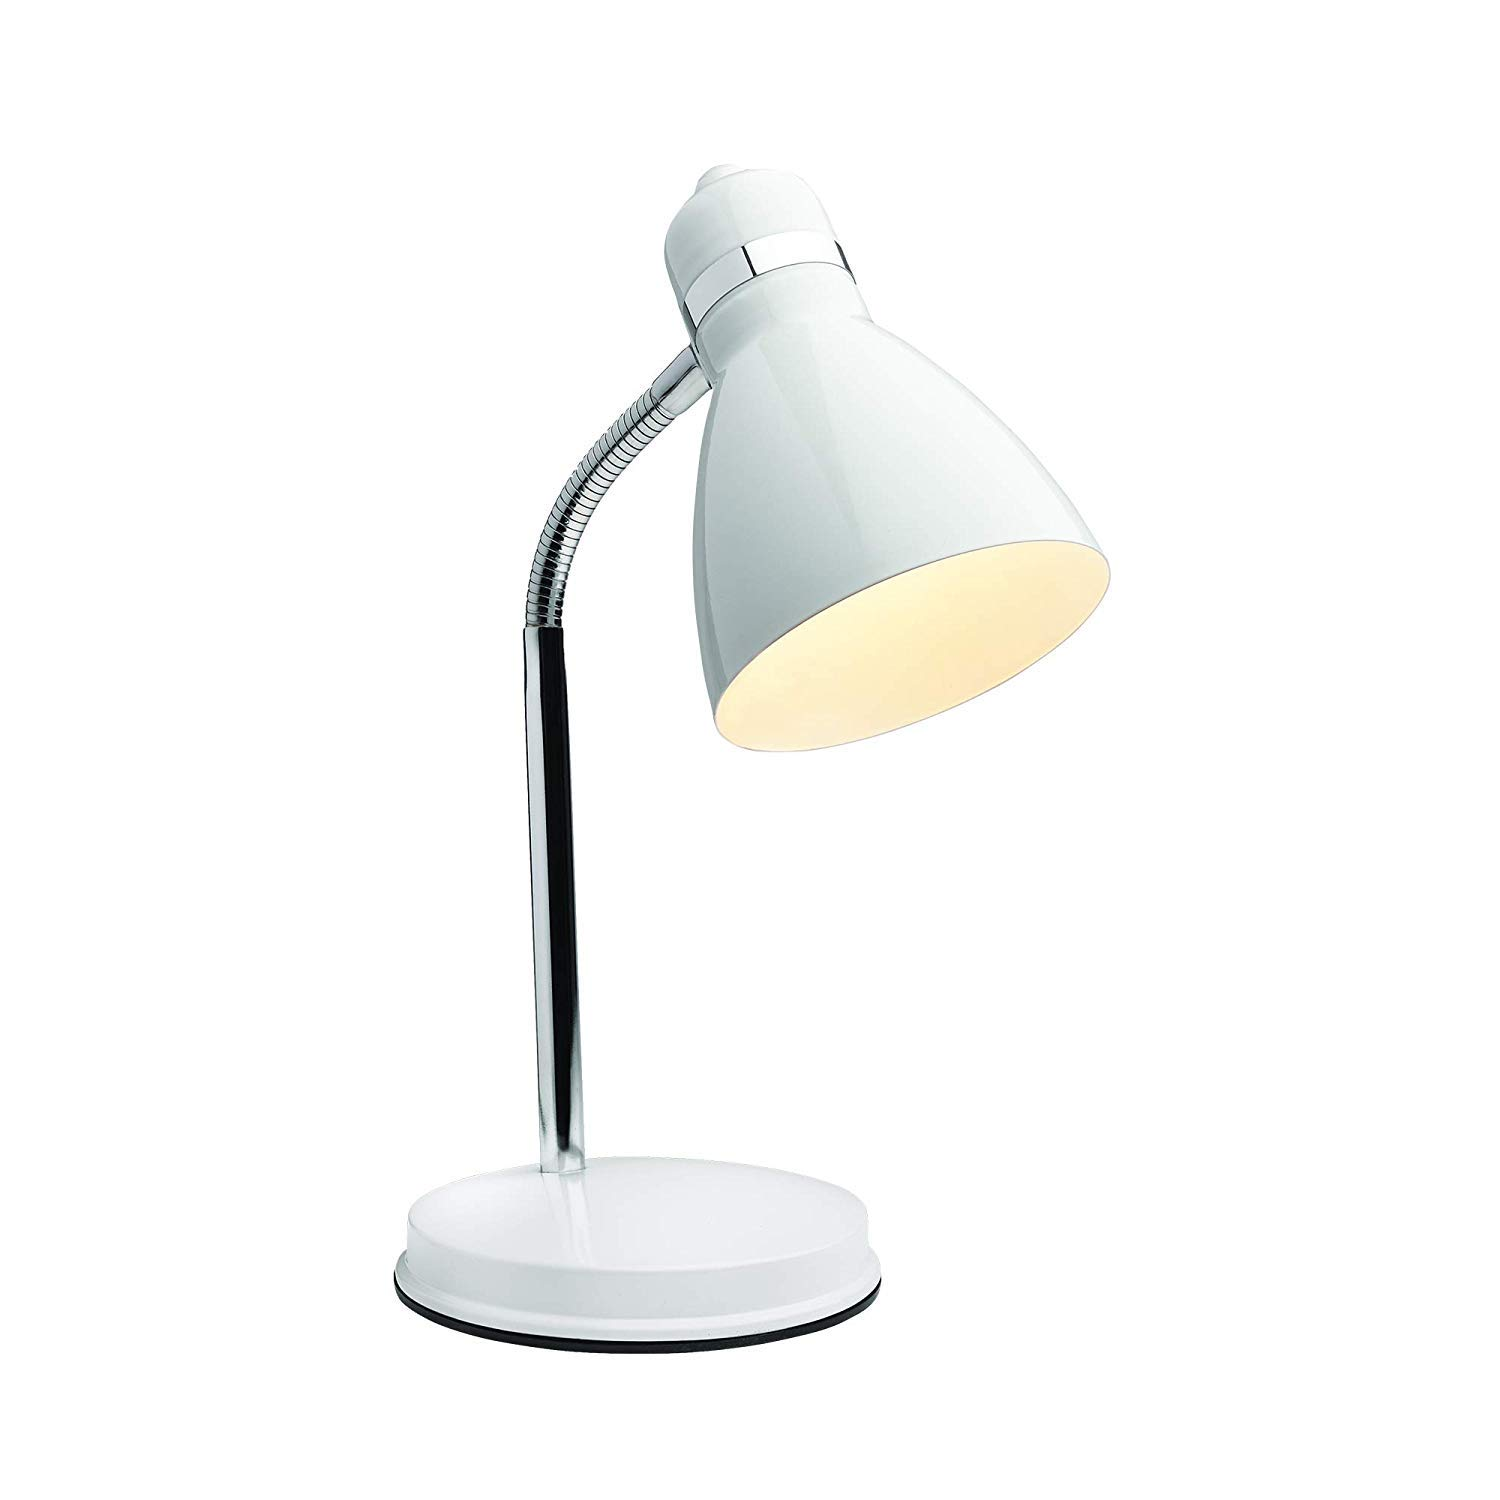 Newhouse Lighting NHDK-OX-WH Oxford Desk, Flexible Goose Neck Table Lamp with 40 Watt LED Bulb Included, White